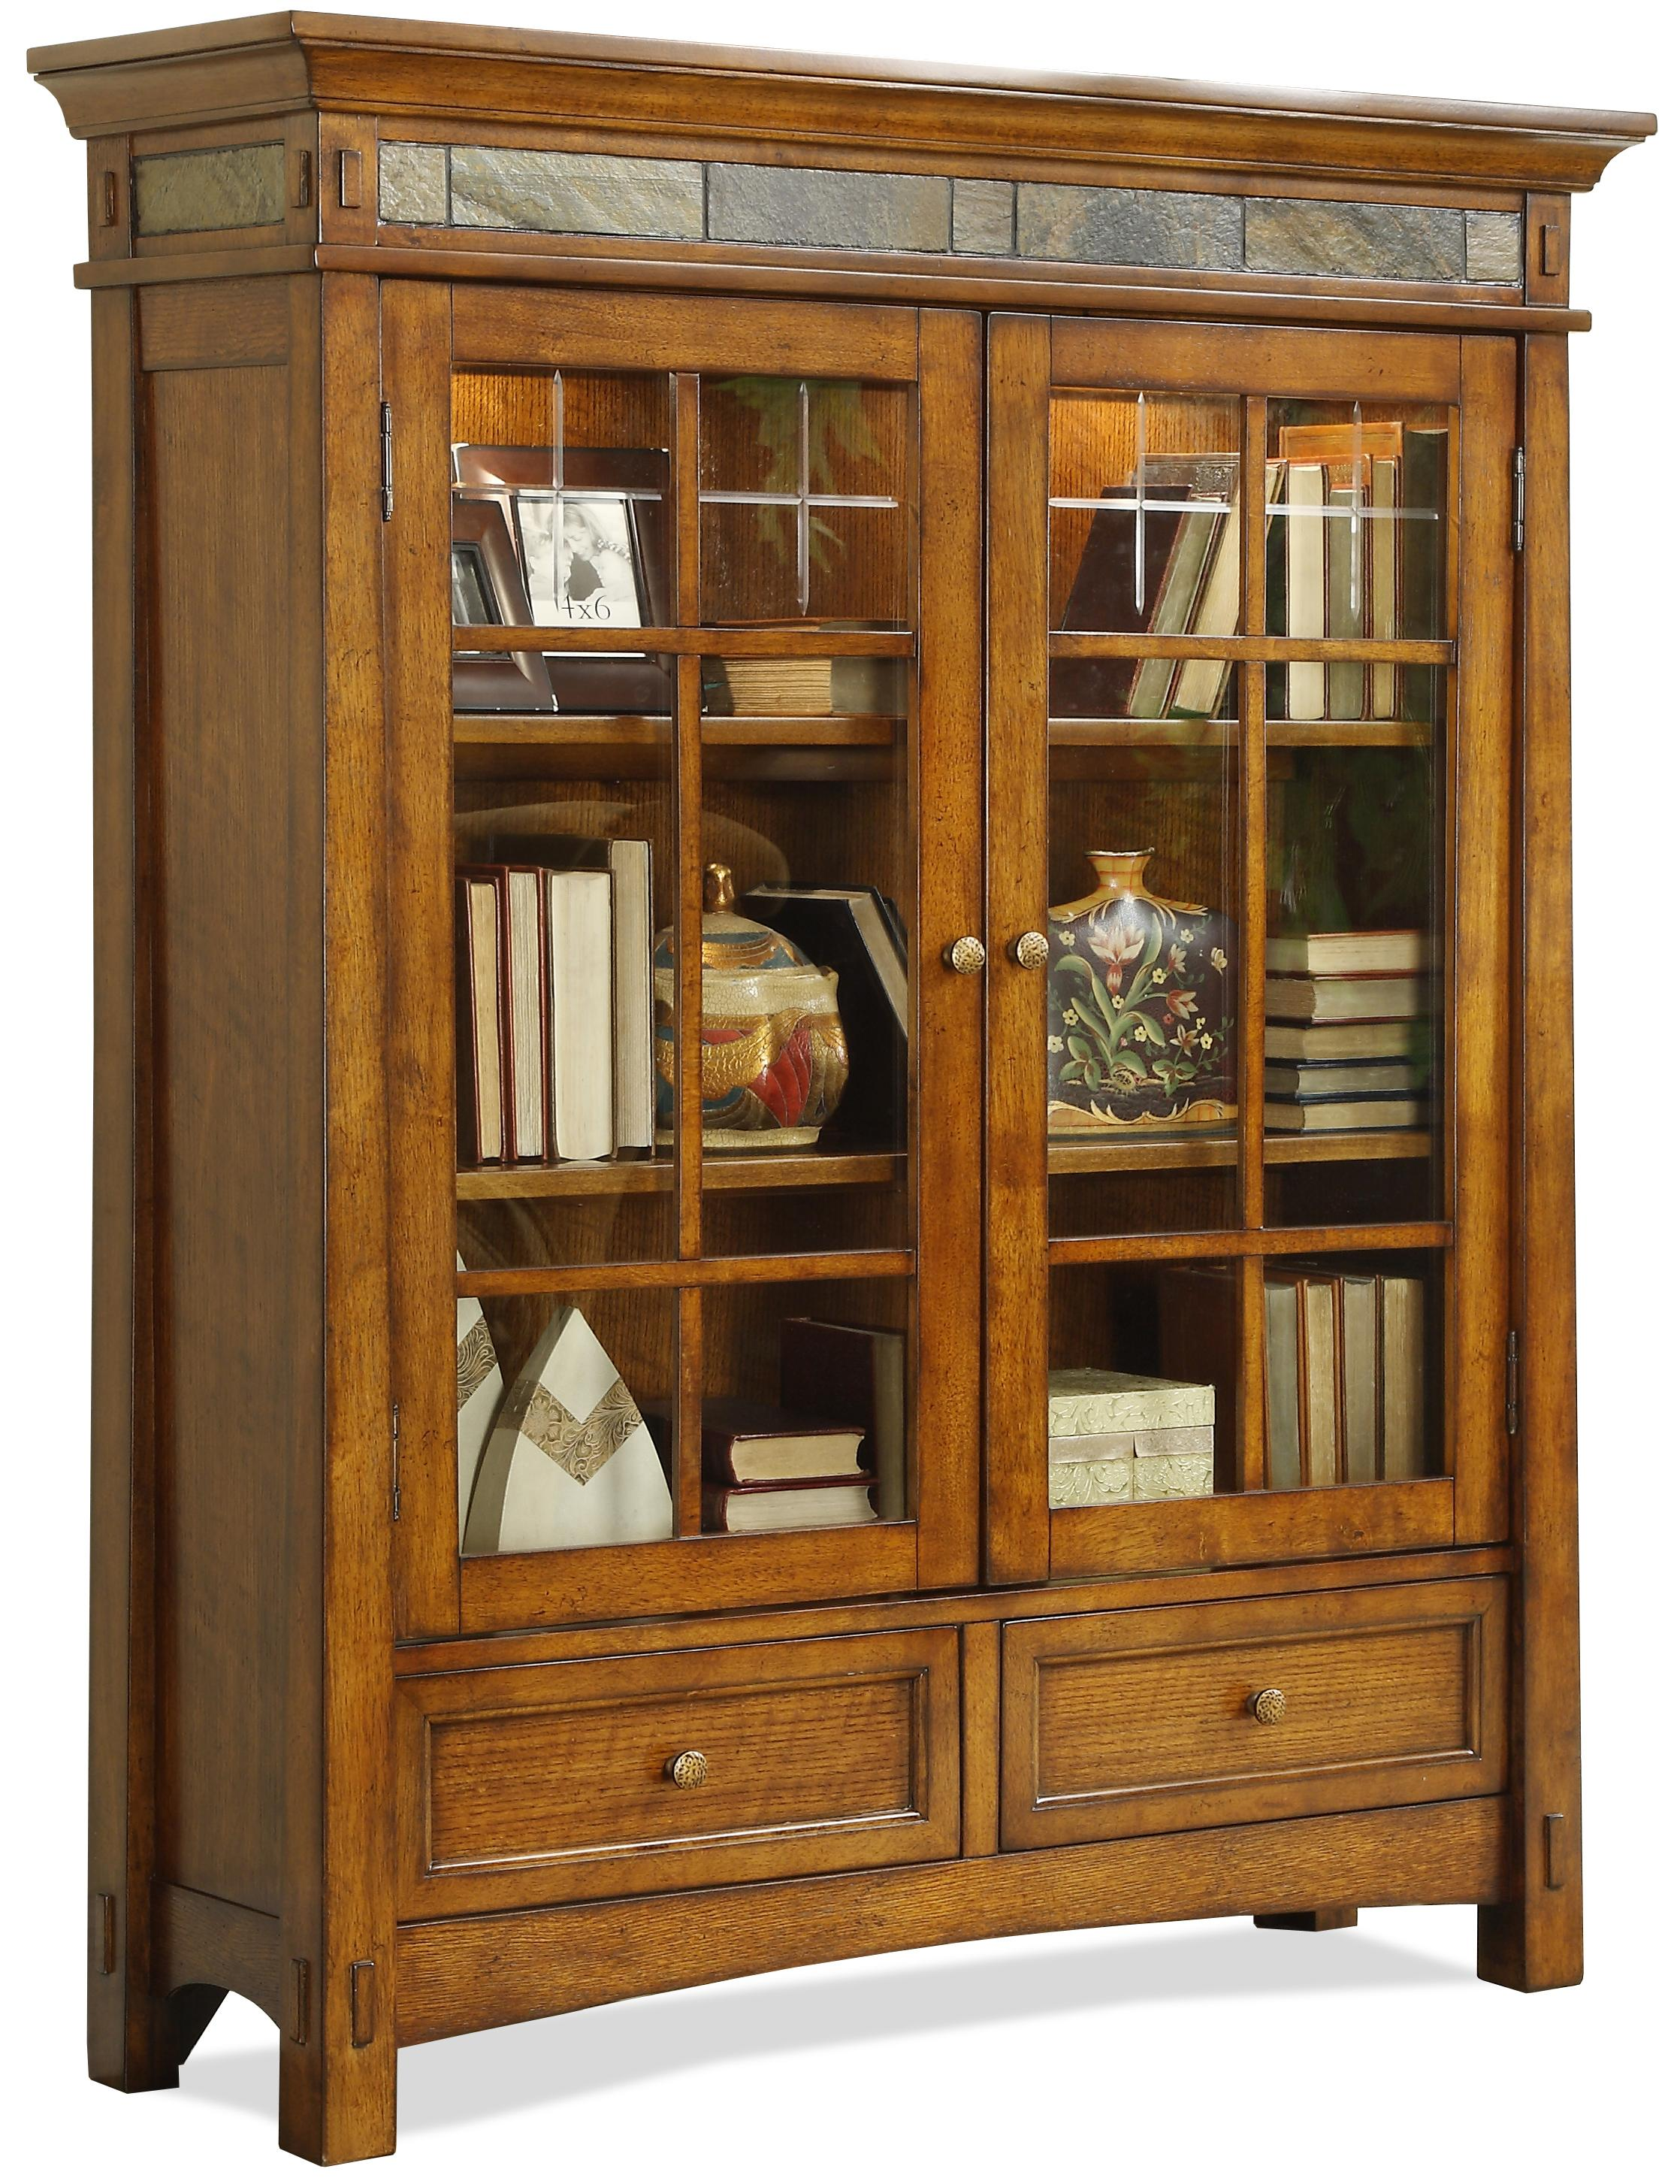 Riverside Furniture Craftsman Home 2 Glass Door Bookcase with Touch ...